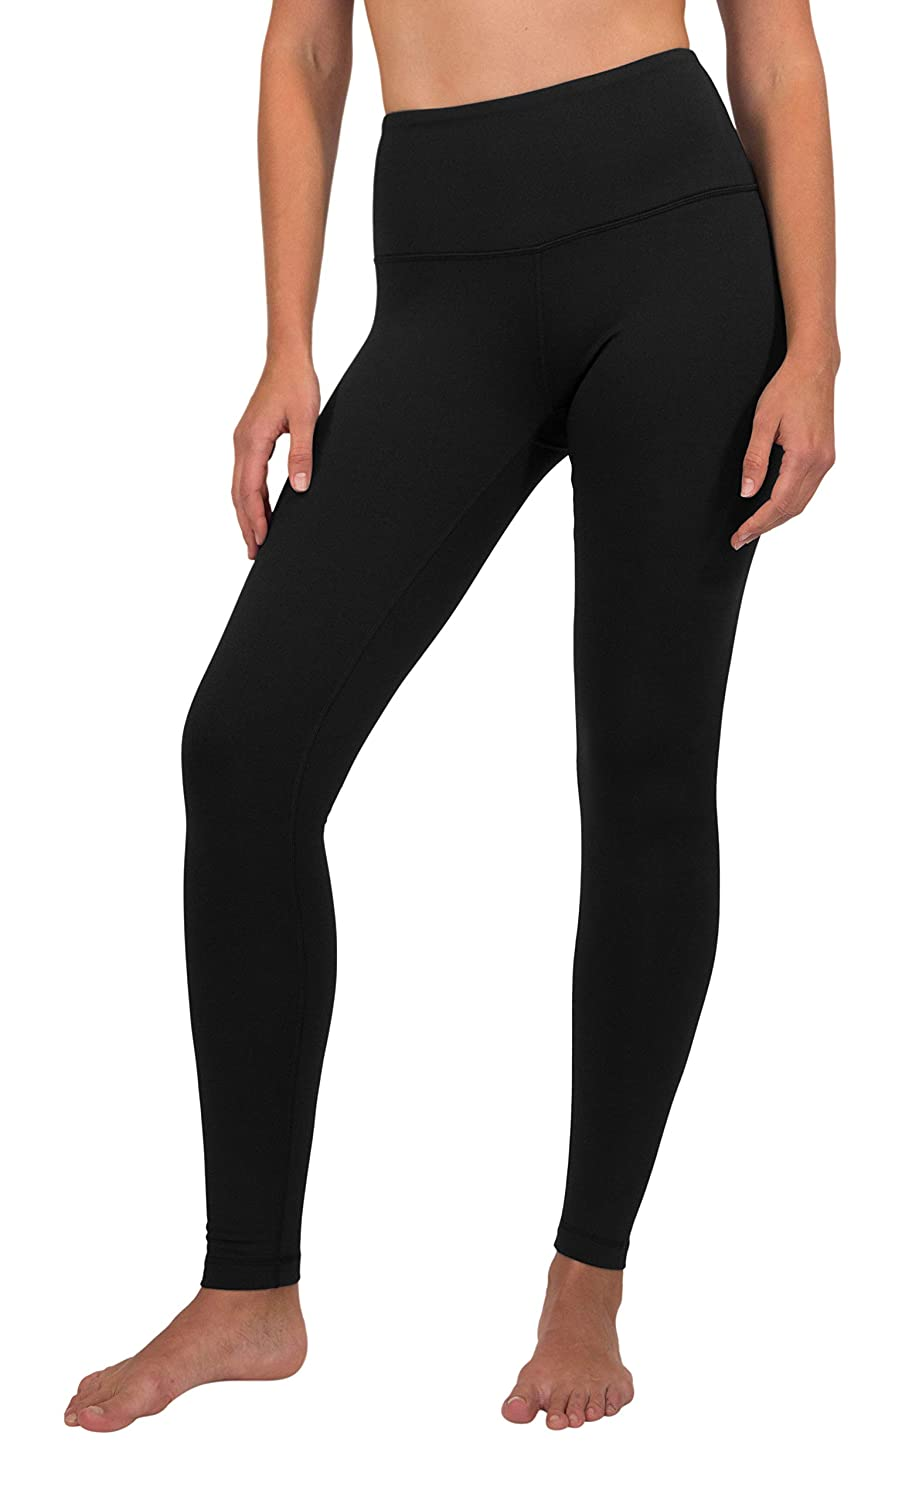 90 Degree By Reflex High Waist Fleece Lined Leggings Yoga Pants